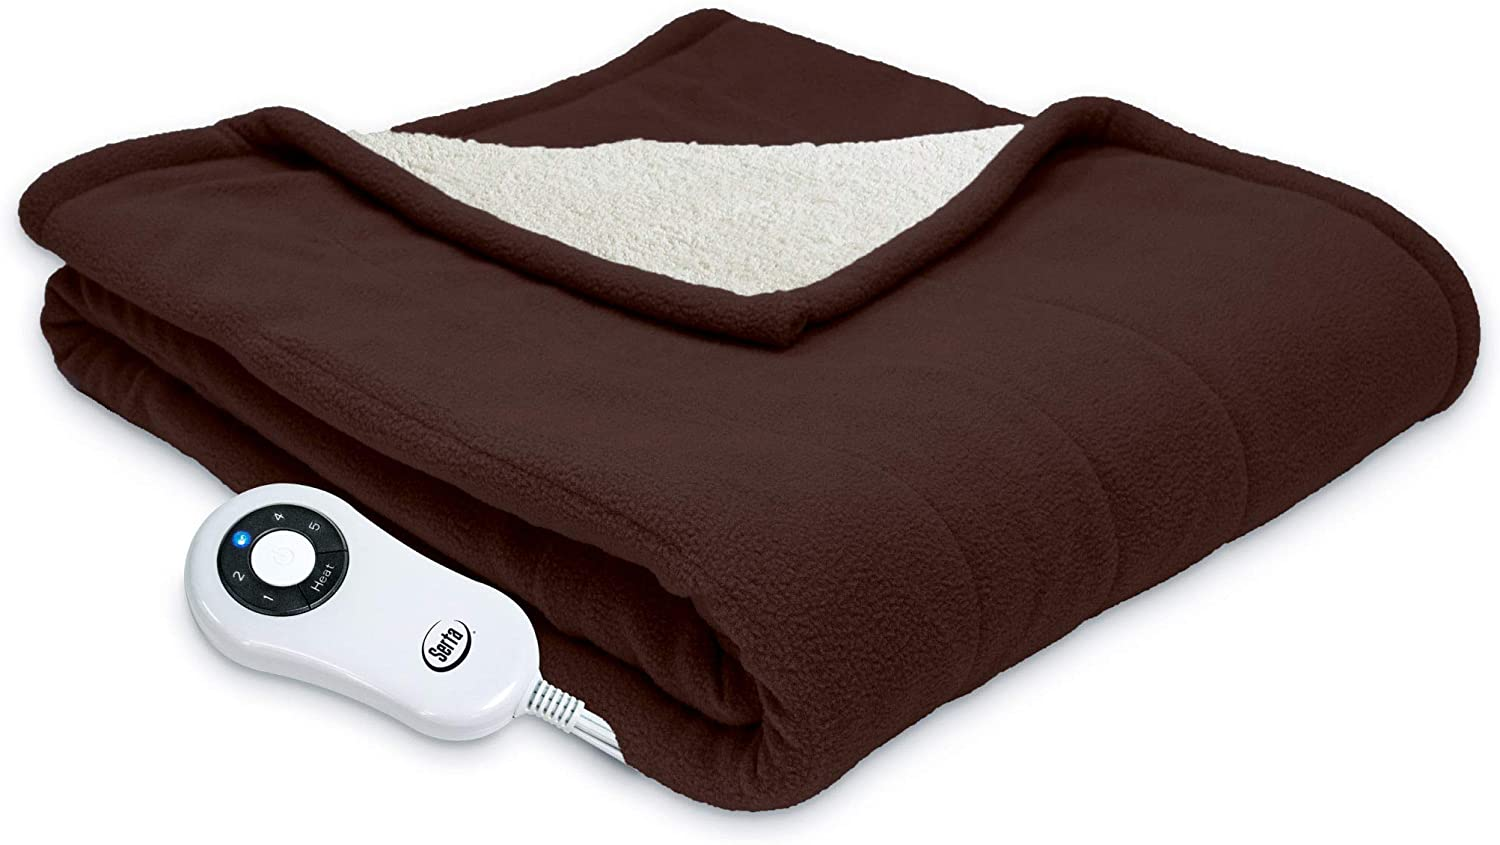 "Serta | Reversible Sherpa/Fleece Heated Electric Throw Blanket, 50""x60"" With 5 Setting Controller, Chocolate"